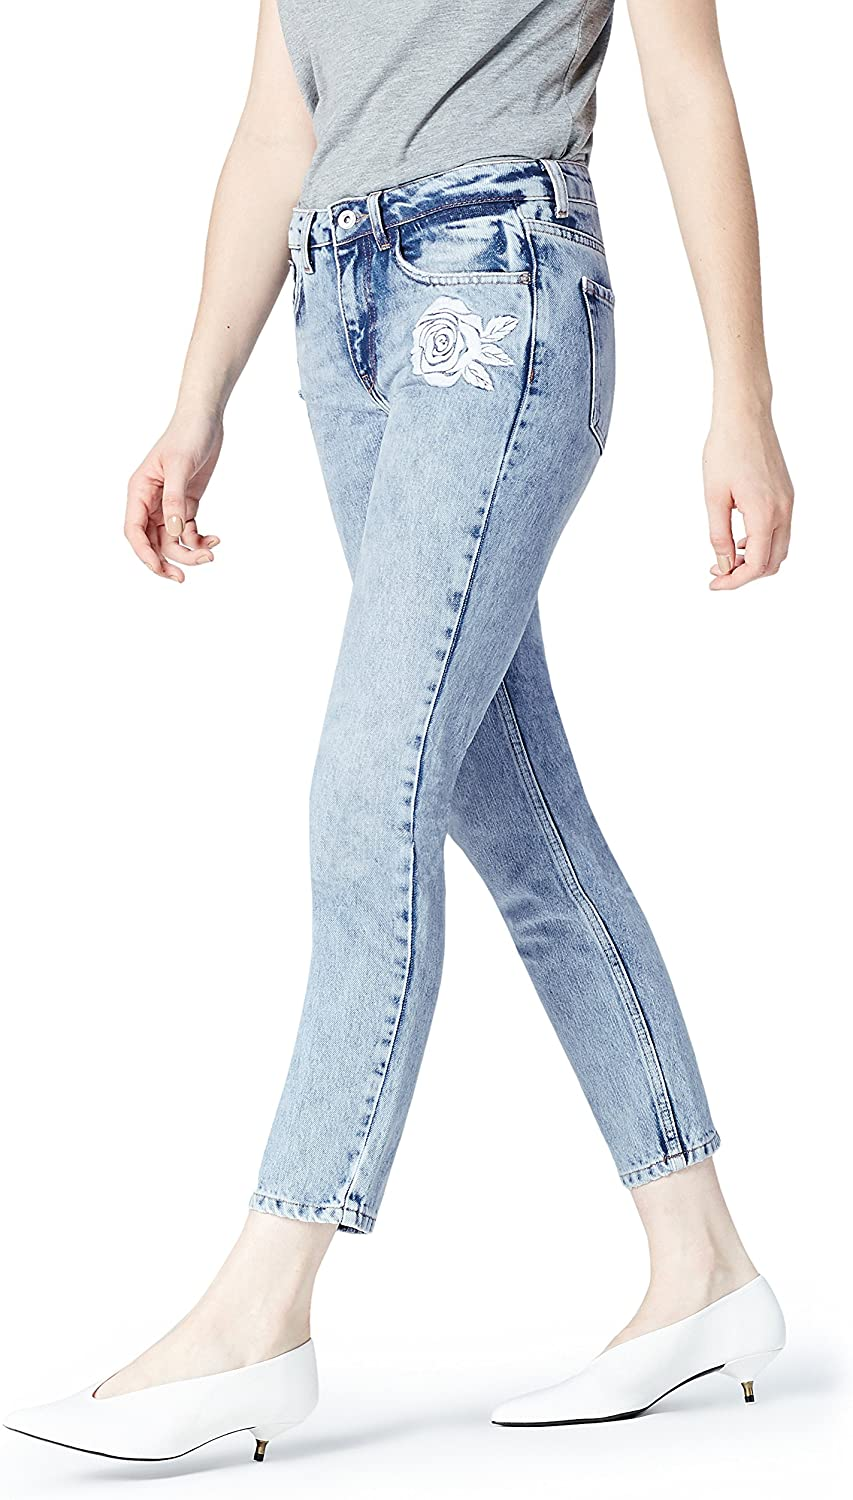 Women's Slim Mid Rise Embroidered Jeans